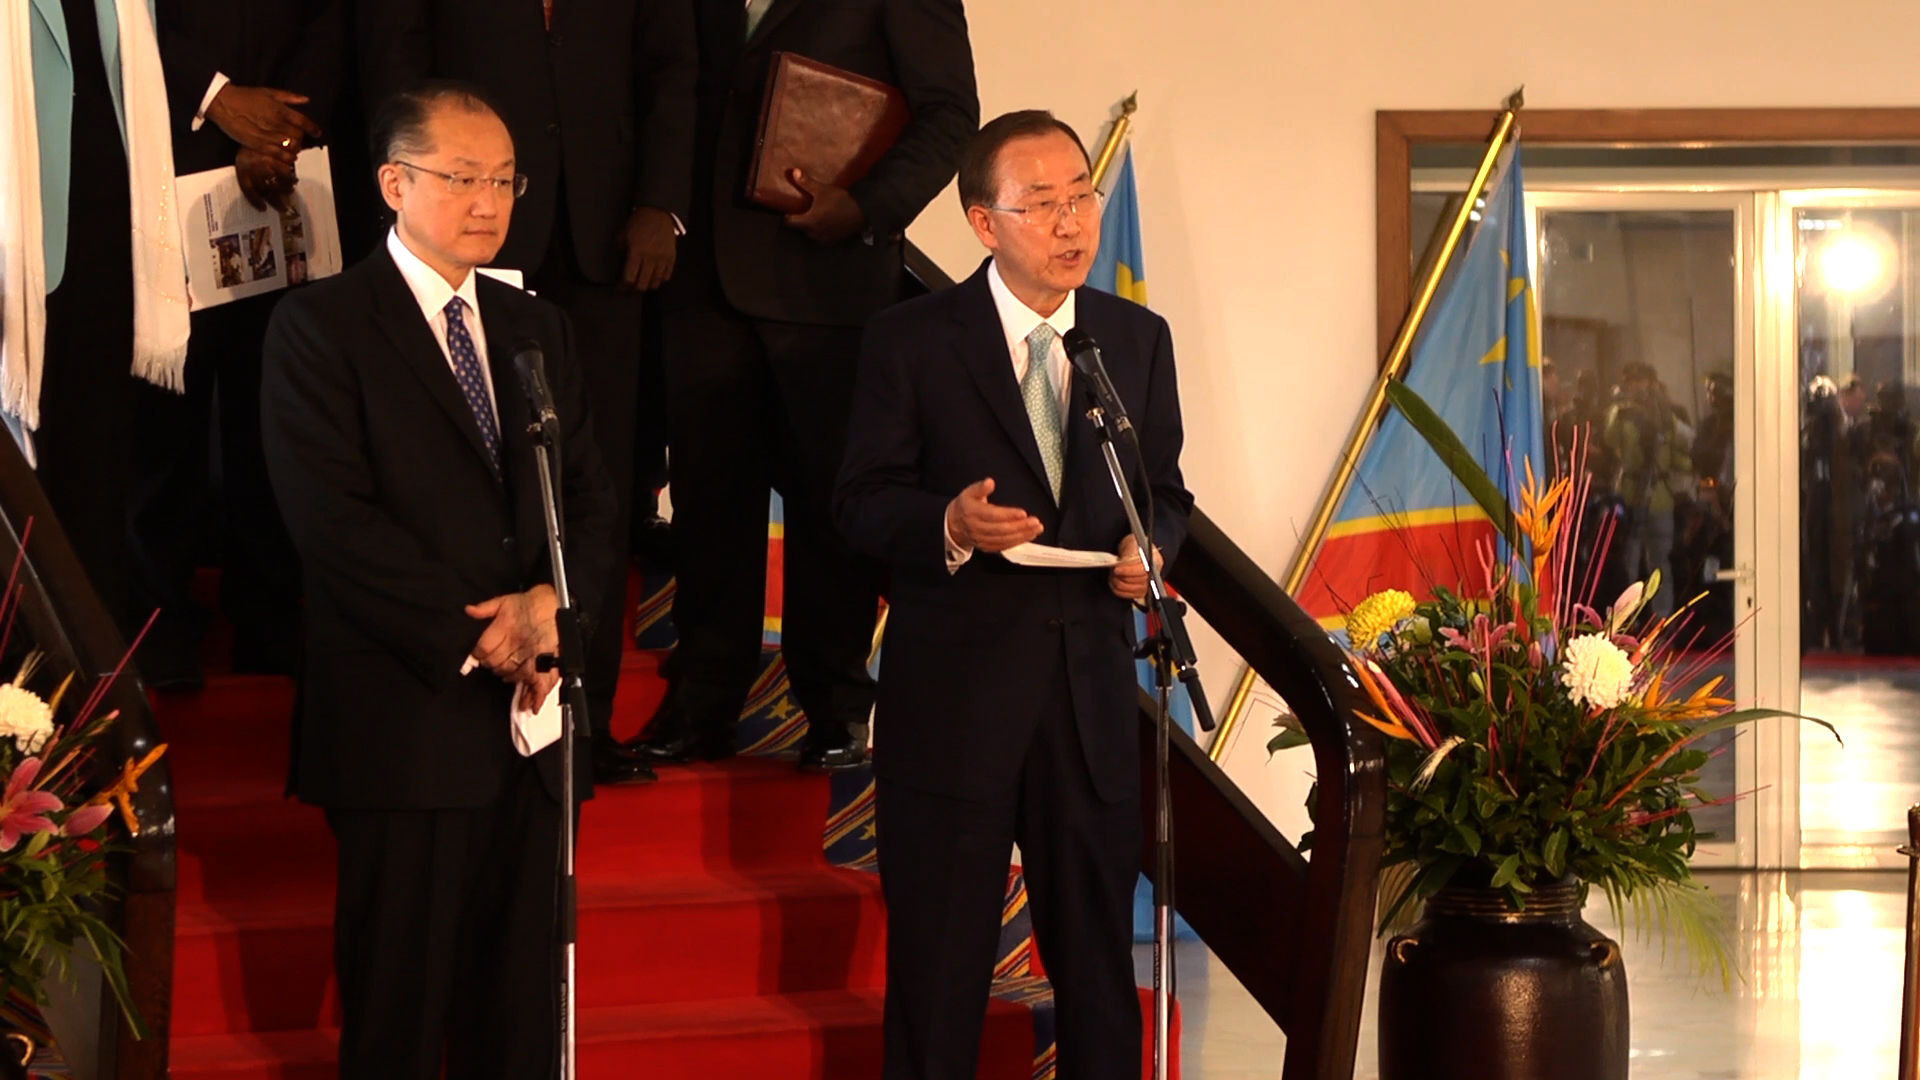 Selected frame from video story DR CONGO/ BAN KI-MOON- JIM YONG KIM